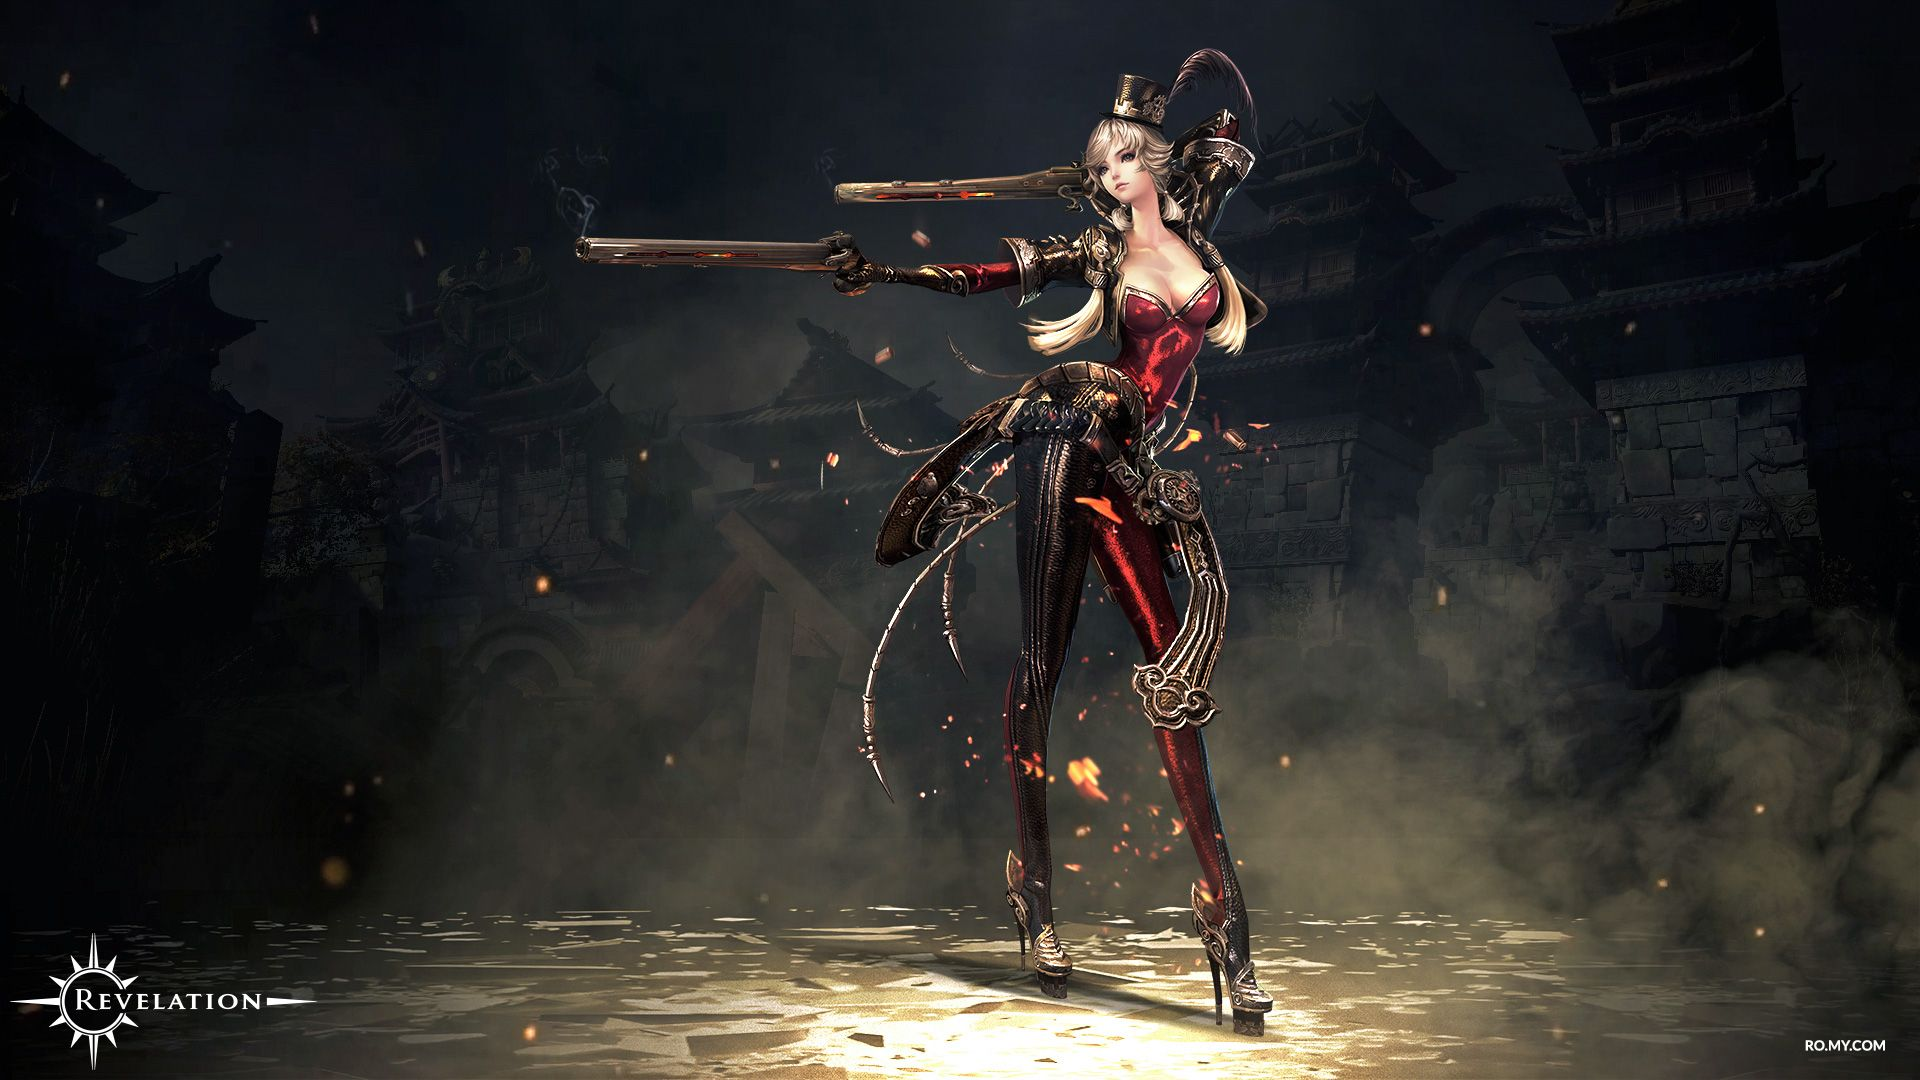 For A Gret List of F2P MMO PC Games check my site at www